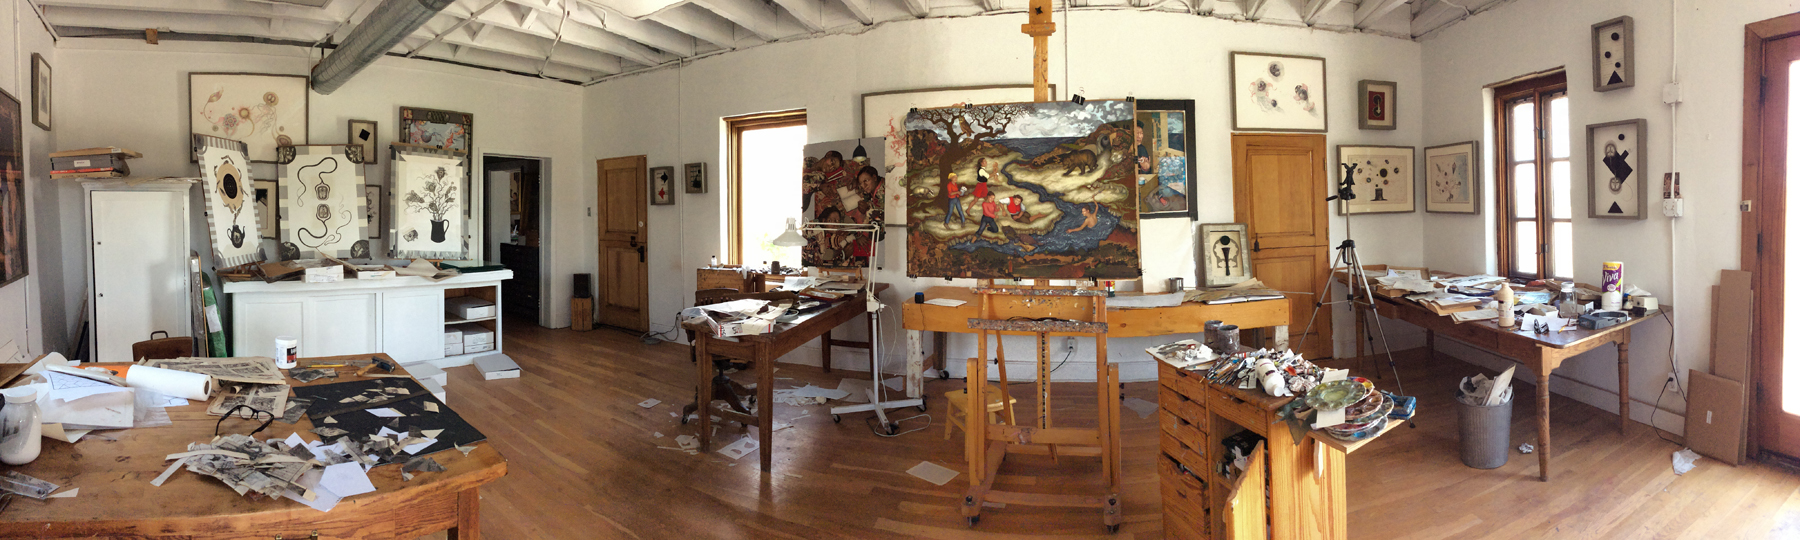 """Studio work room with """"Fishing for Bears"""" on the easel July 2018"""